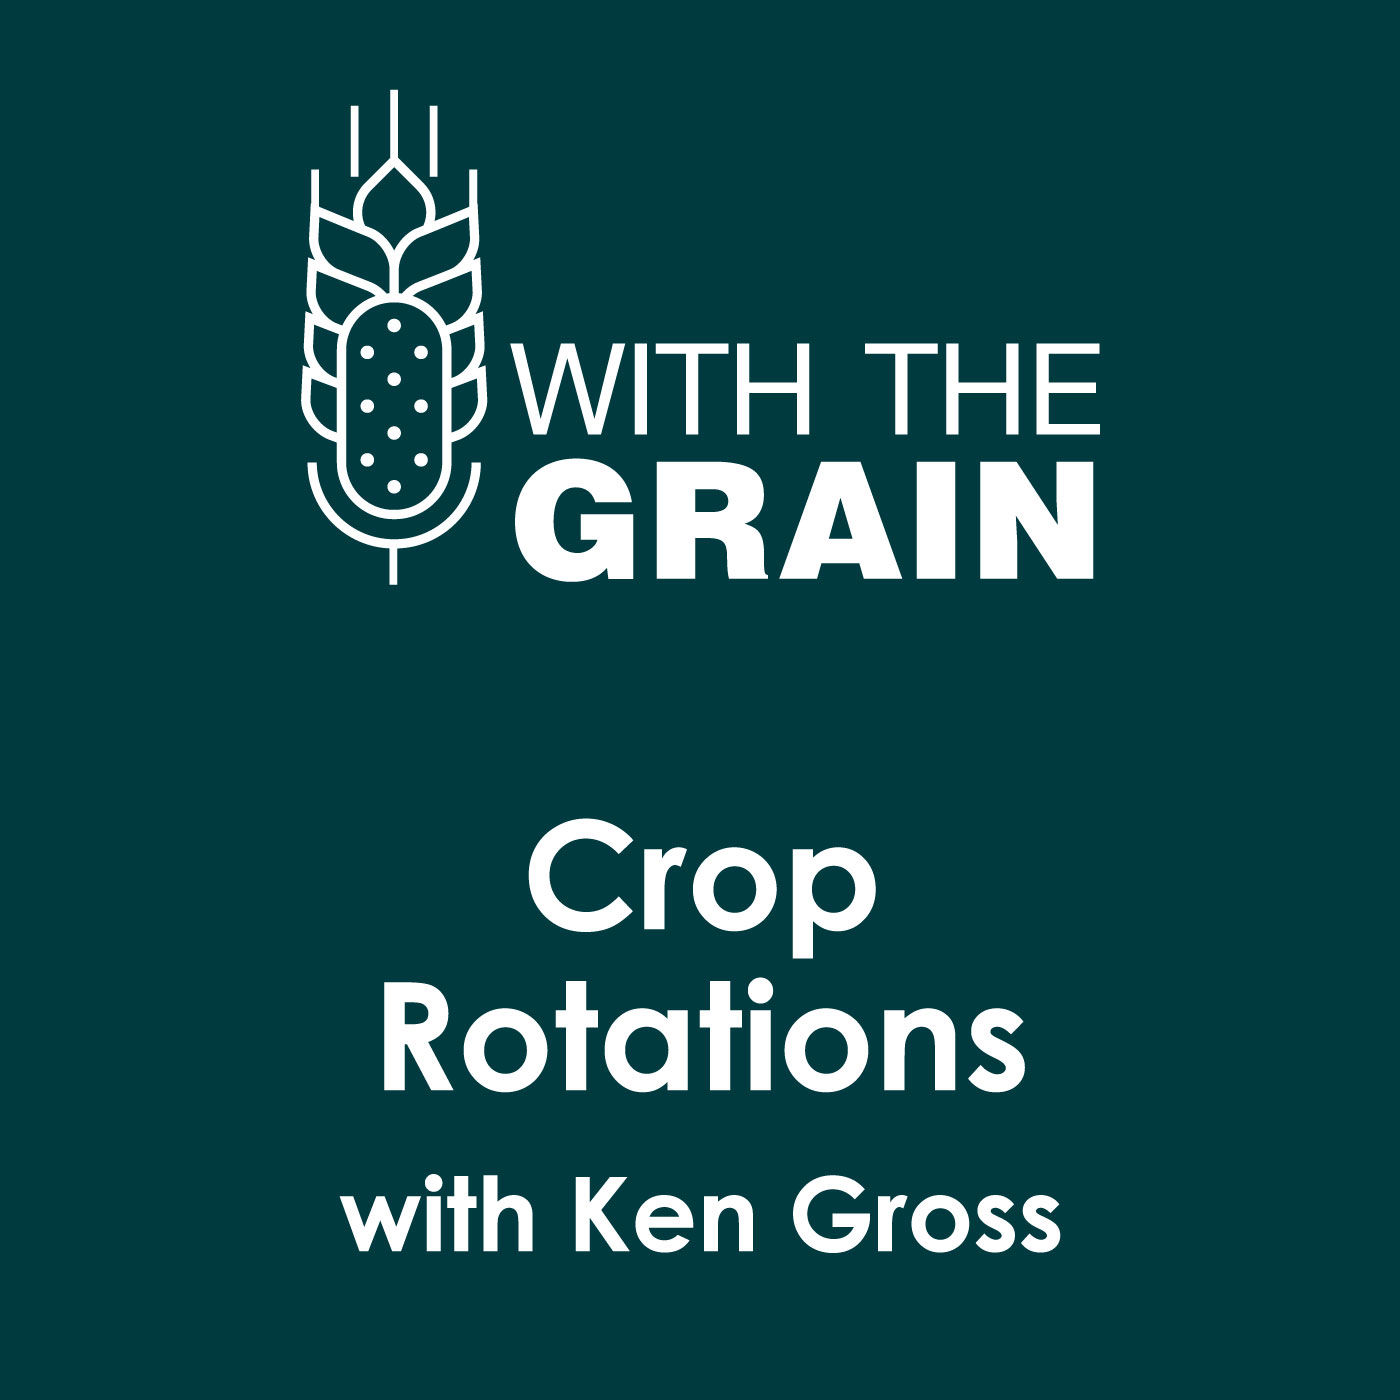 Crop Rotations and How Winter Wheat Can Benefit Your Farm, with Ken Gross